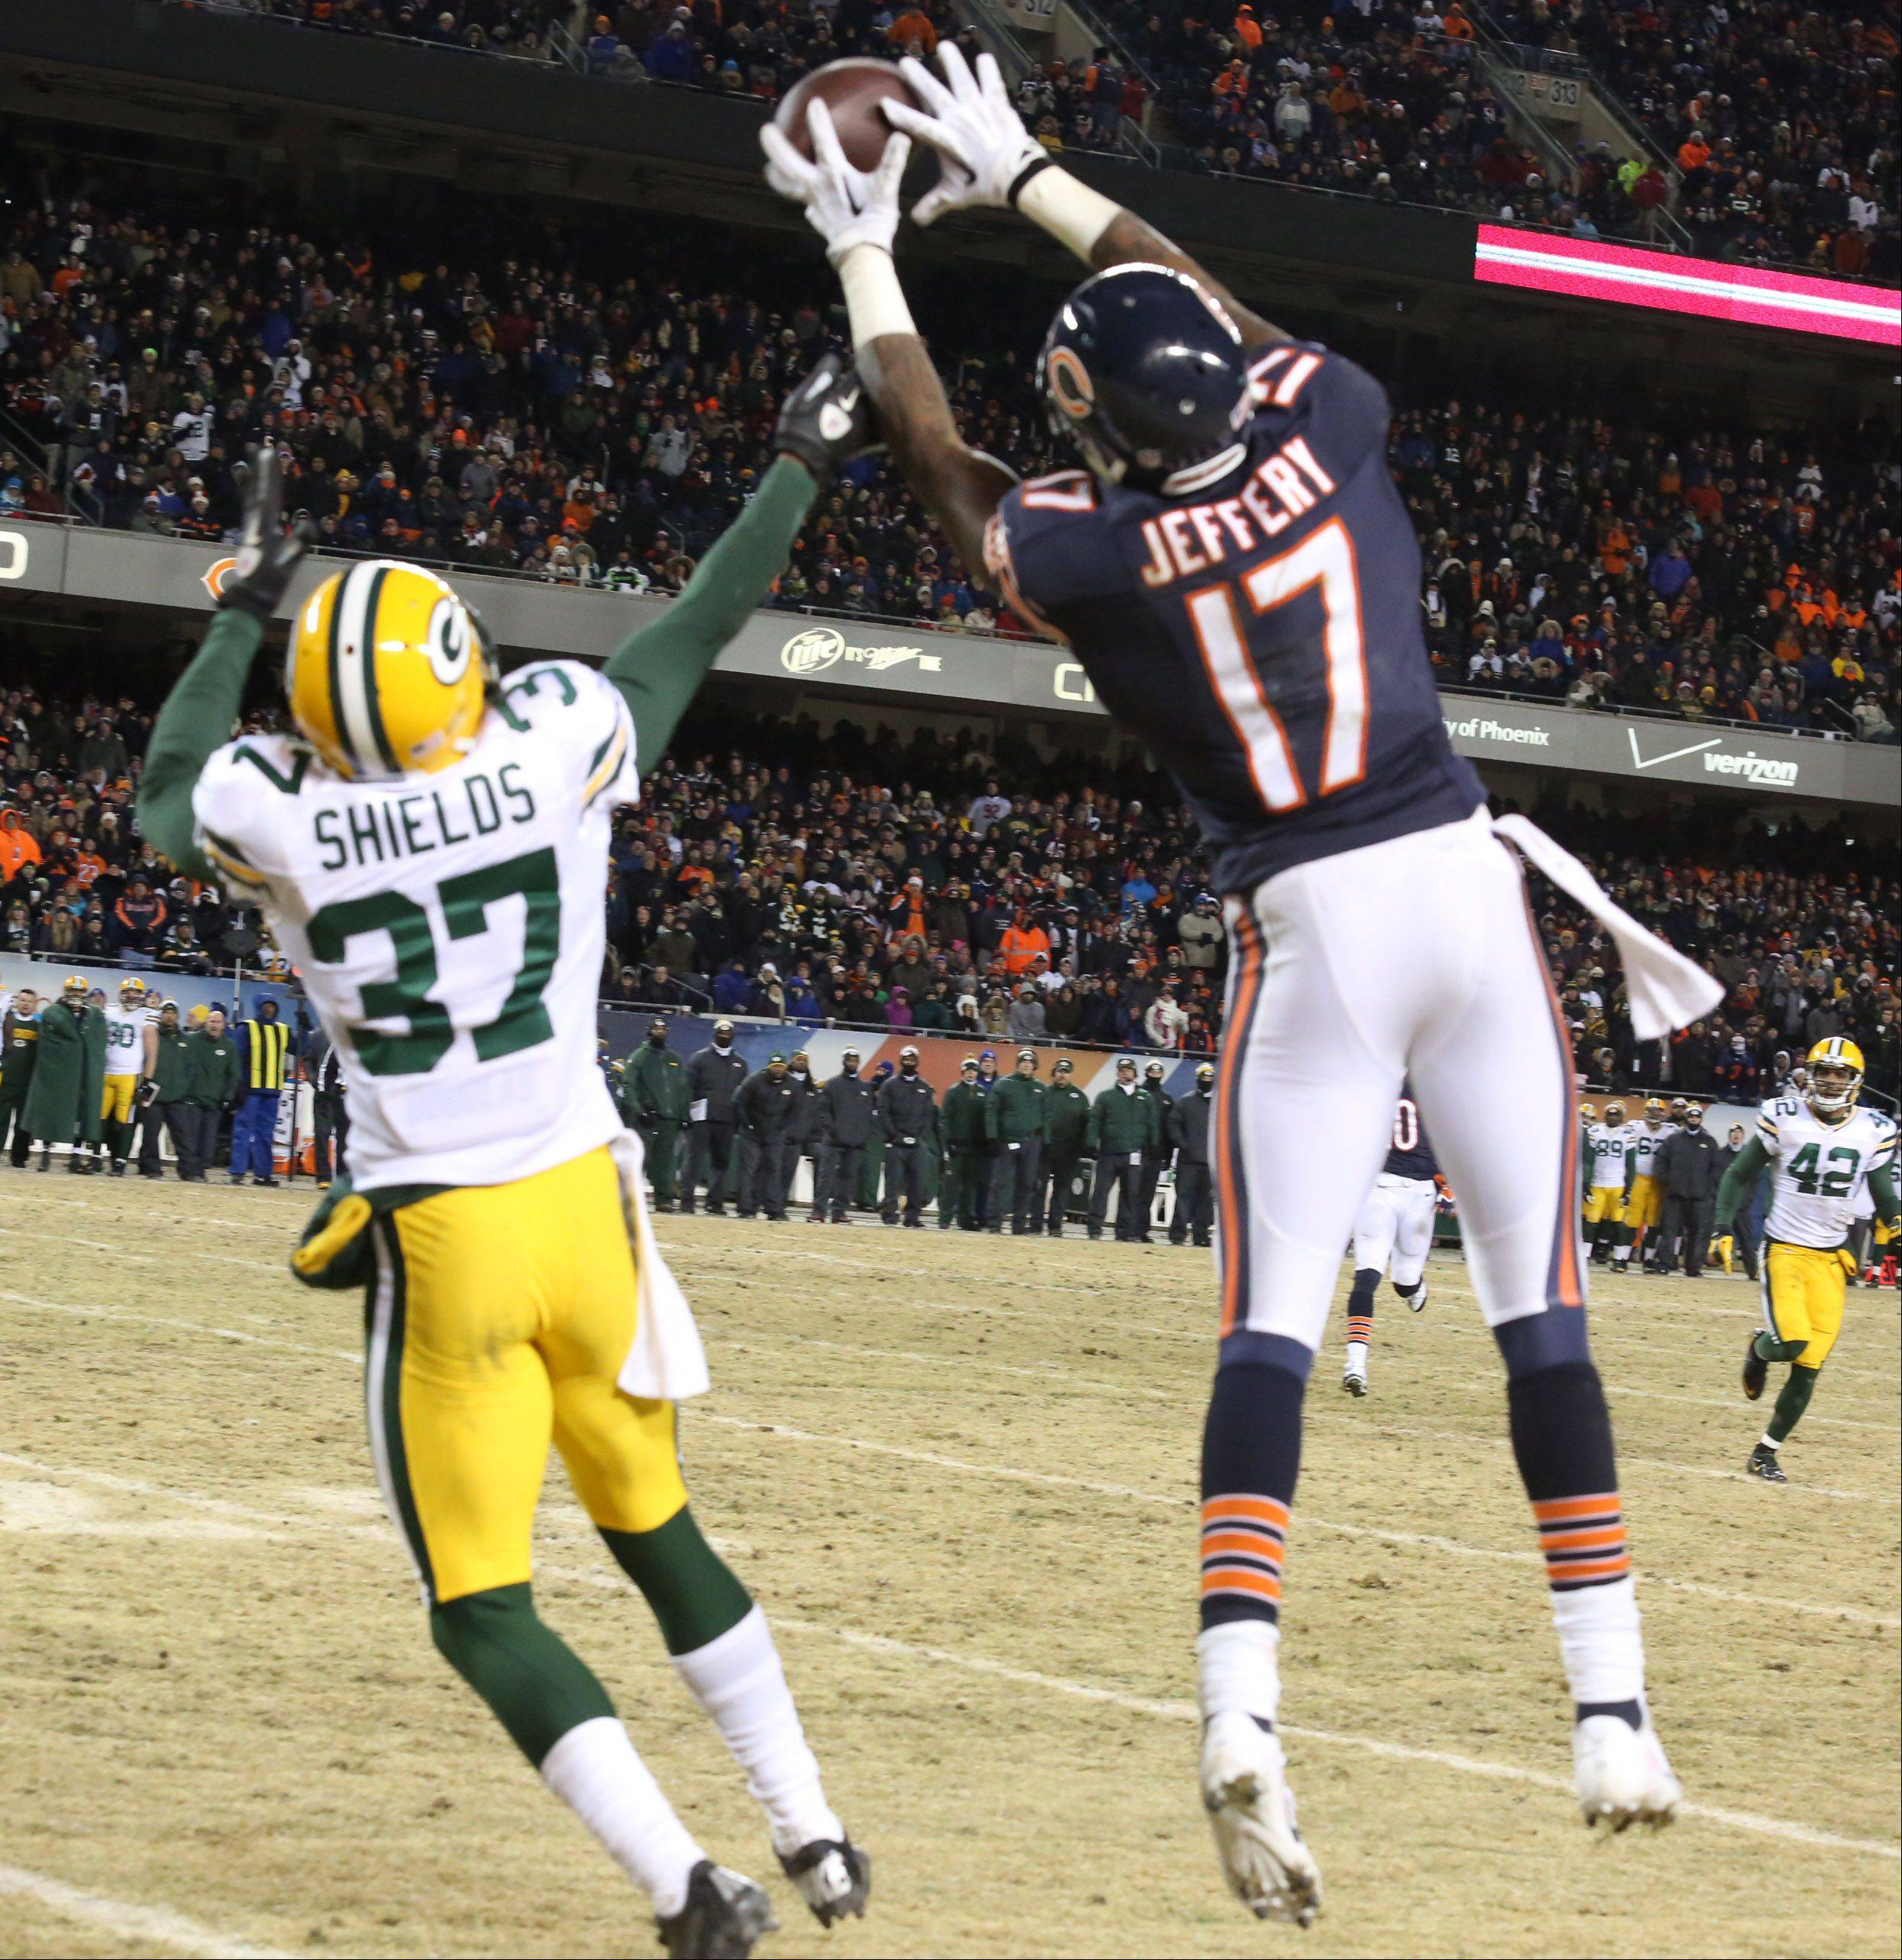 Bears wide receiver Alshon Jeffery missed catching this pass by Chicago Bears quarterback Jay Cutler while covered by Green Bay Packers cornerback Sam Shields on Sunday at Soldier Field in Chicago.